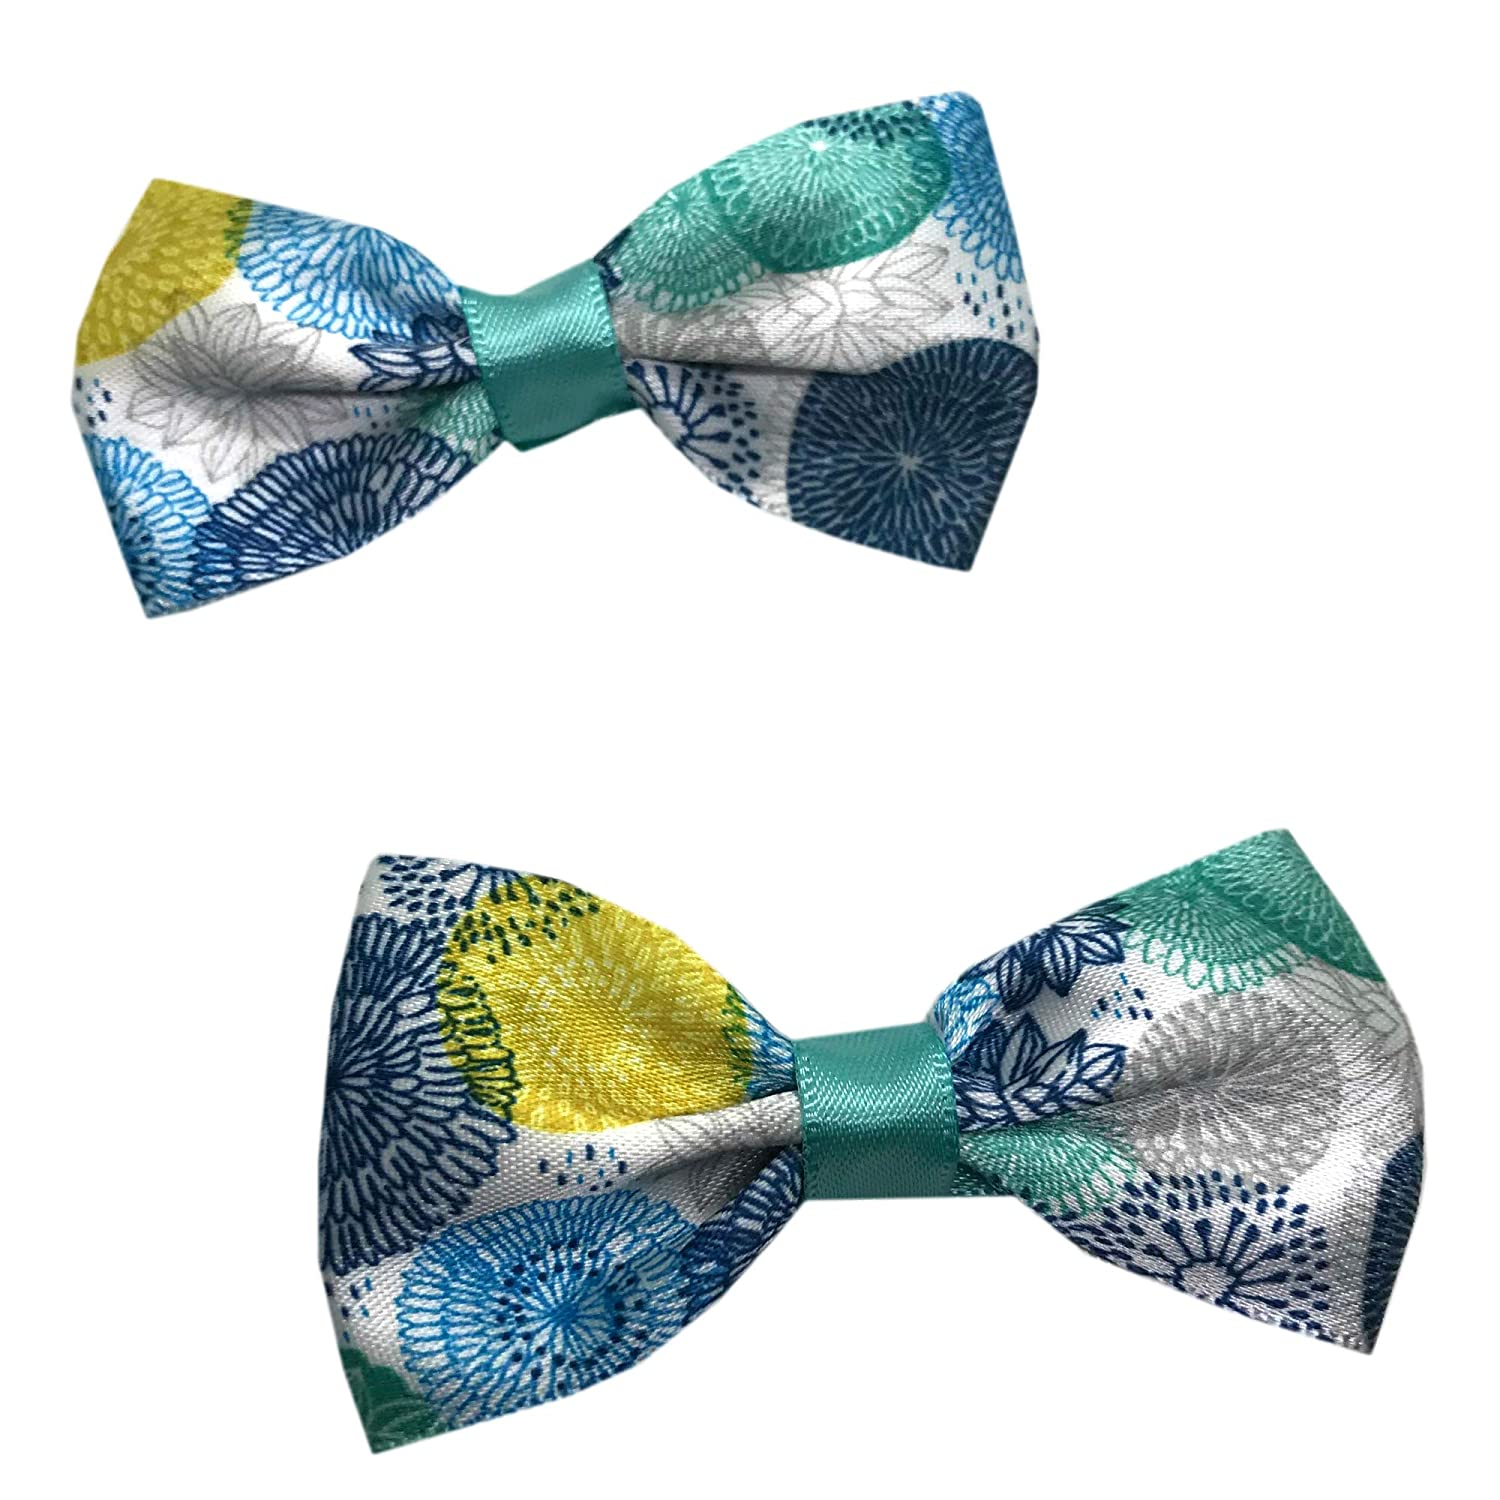 Pigtail Hair Bows Handmade Teal and Gold Dot Girls Hair Bow Set Little Girl Bows Toddler Hair Bows,